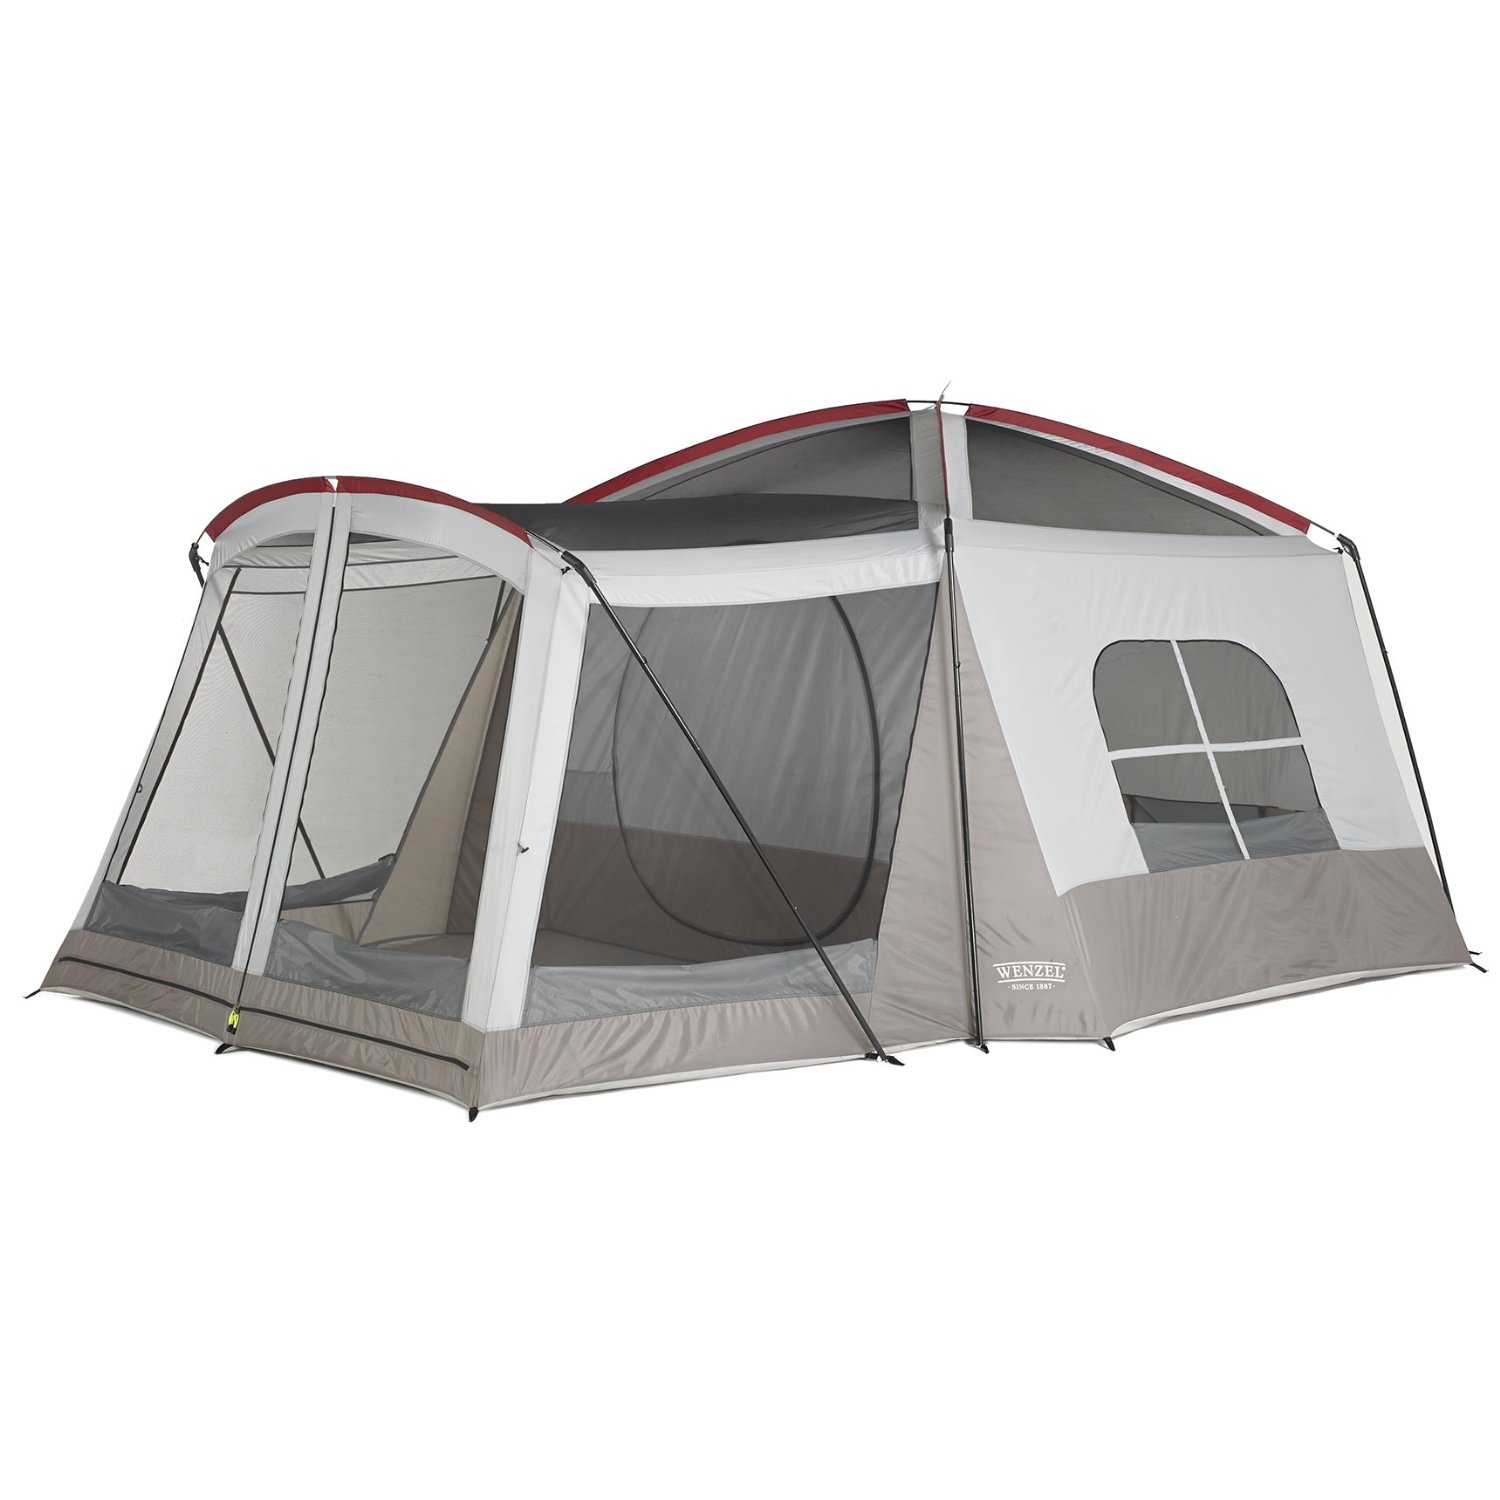 Biggest and Best Tents | .onecrazyhouse.com  sc 1 st  One Crazy House & 12 of the Biggest and Best Tents for Large Families